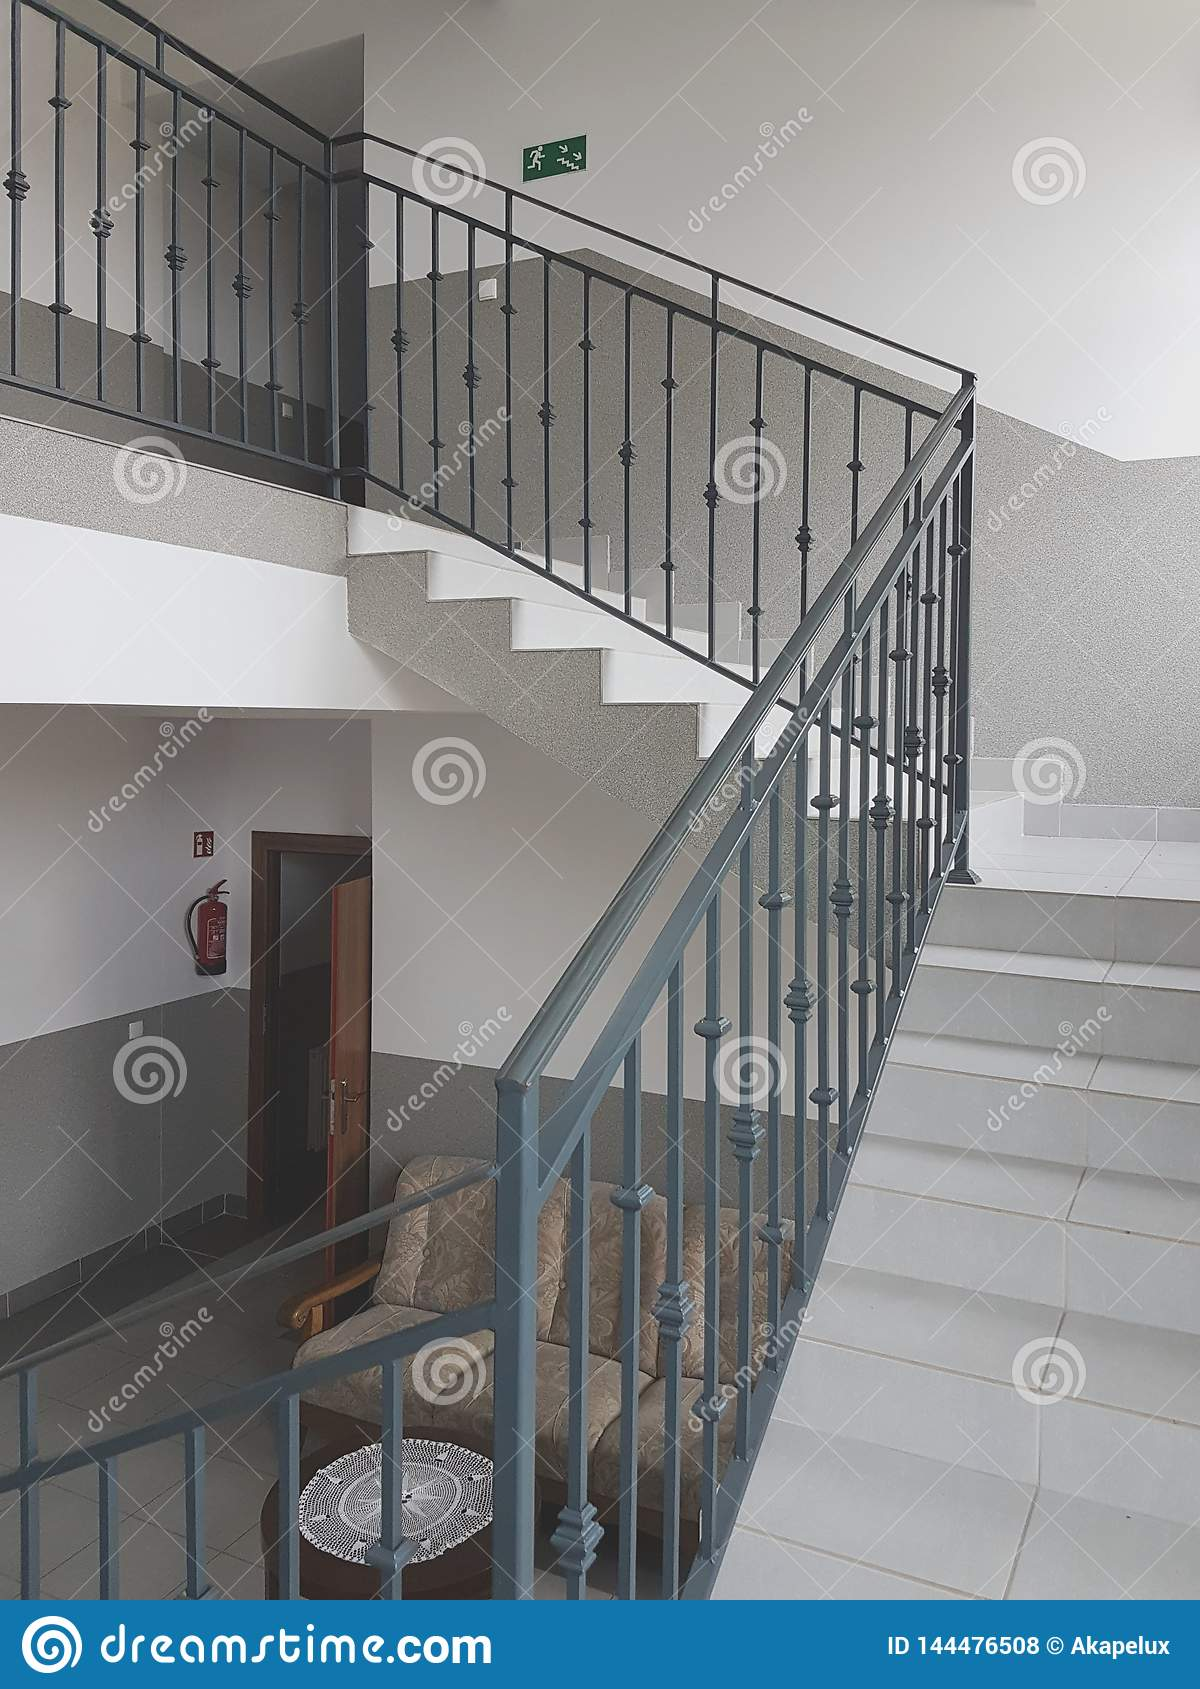 A Staircase With Forged Cast Iron Railings In A Modern Building Illuminated With Light From The Windows Interior Staircase And Editorial Stock Photo Image Of Roof Handrail 144476508